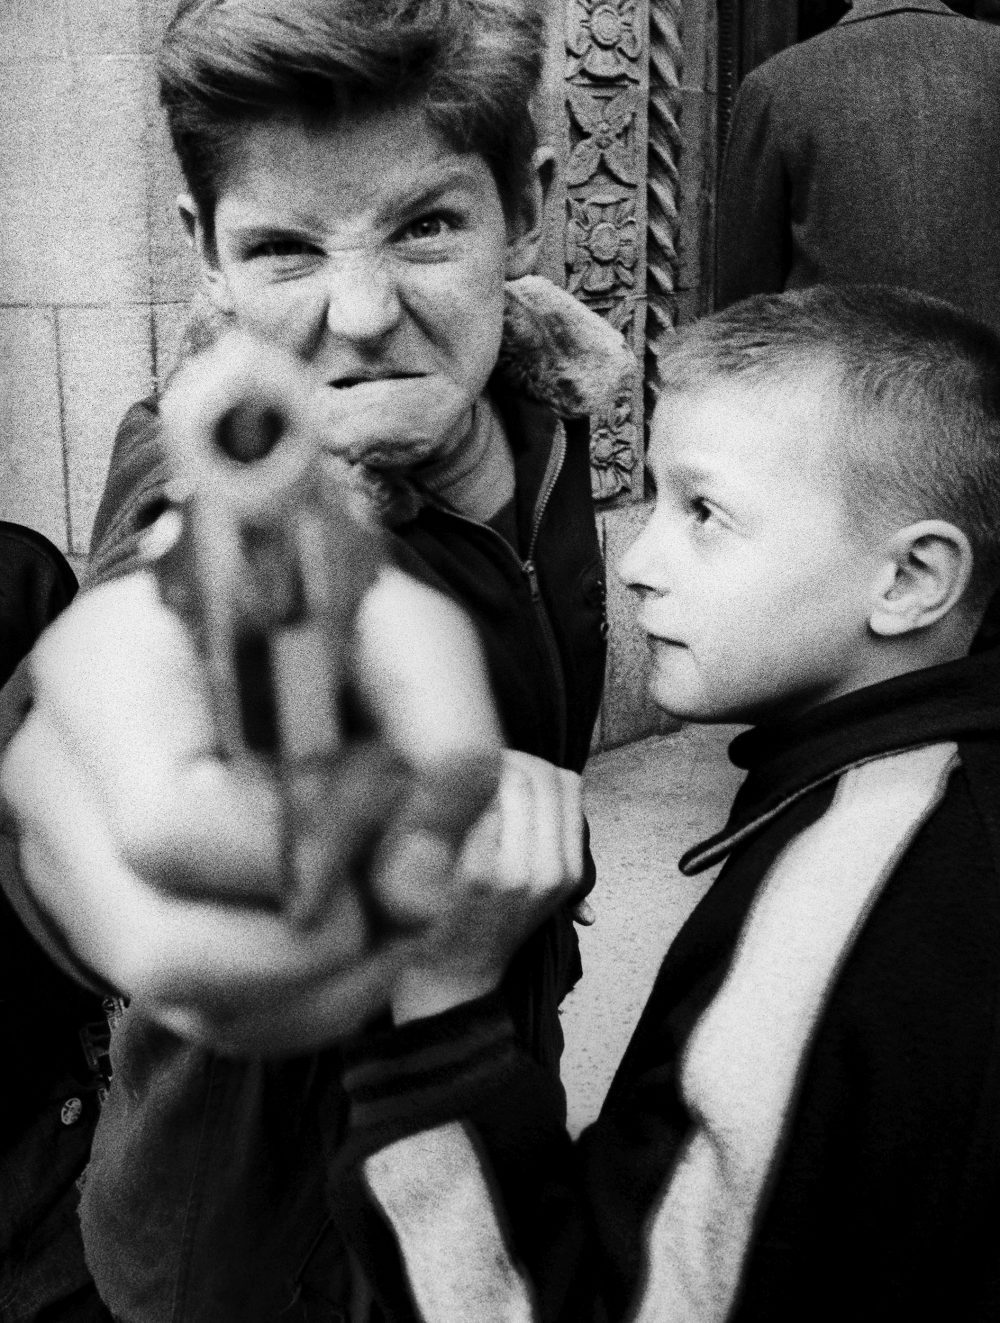 11.gun-1-broadway-and-103rd-street-new-york1954_william-klein